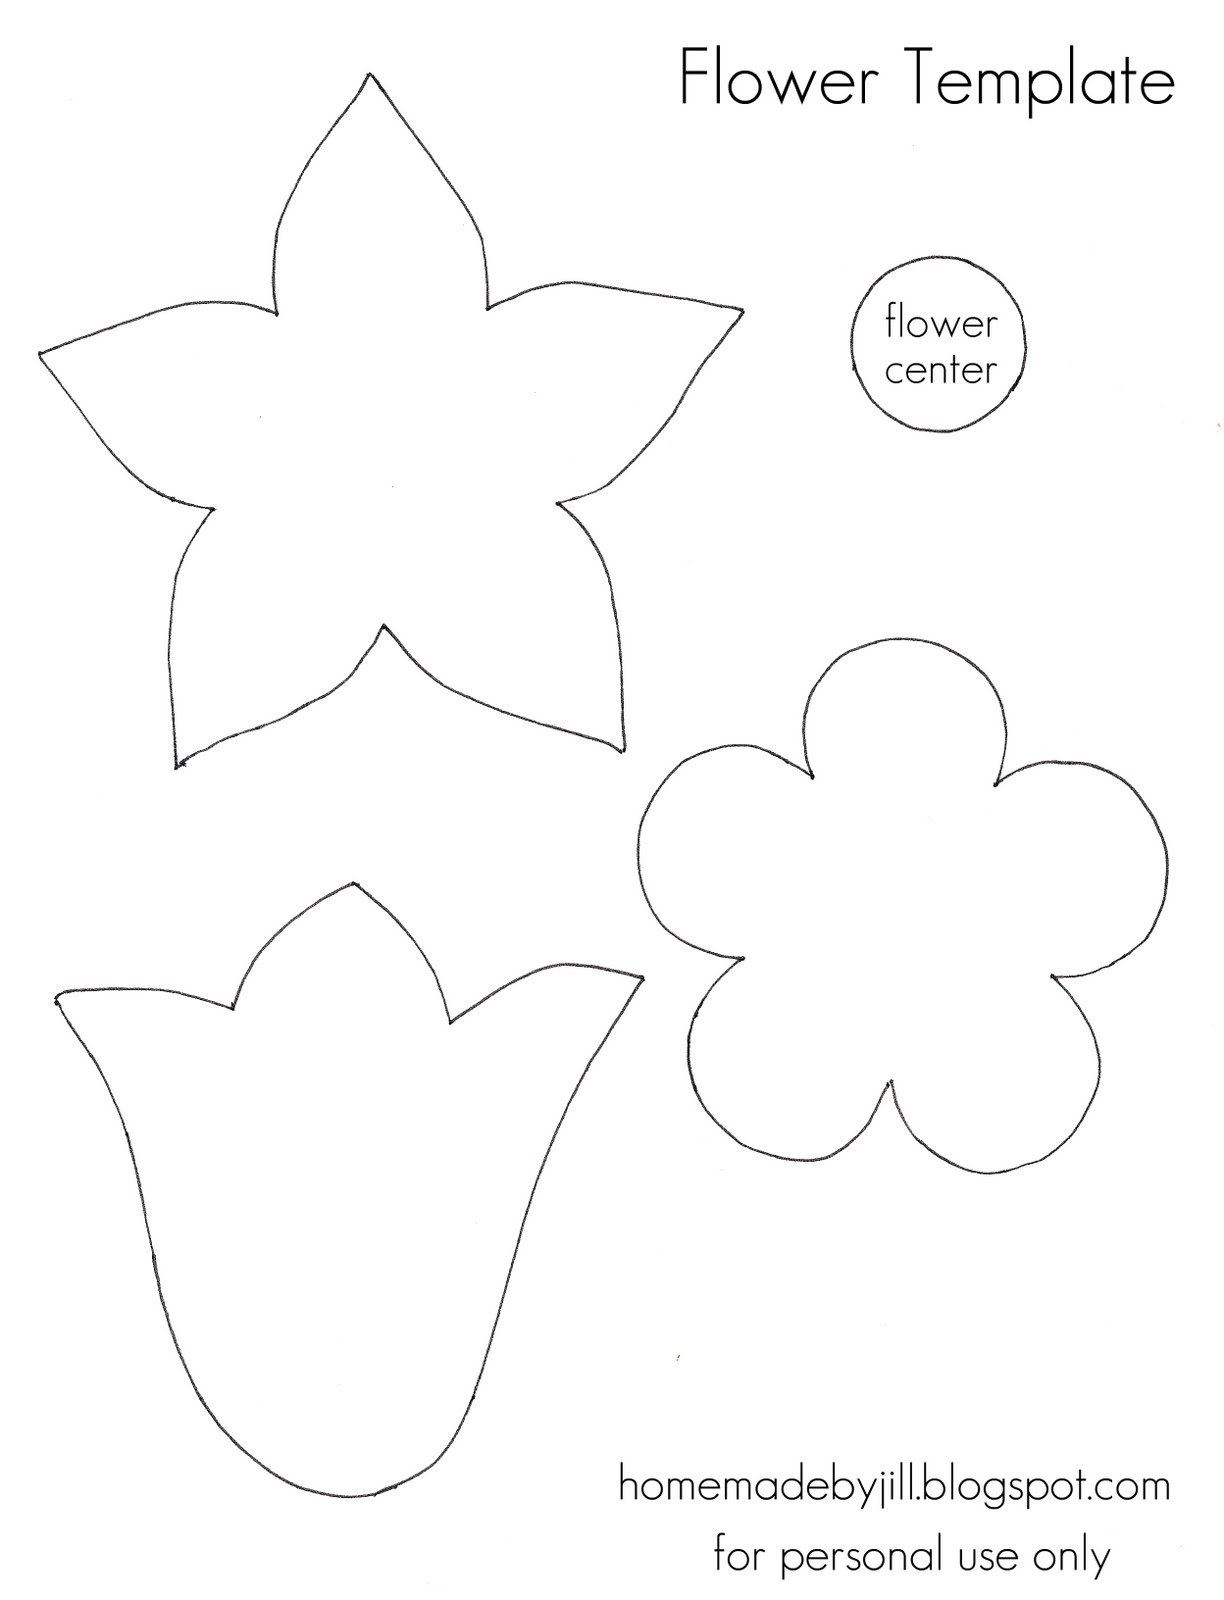 Adorable image within flower templates printable